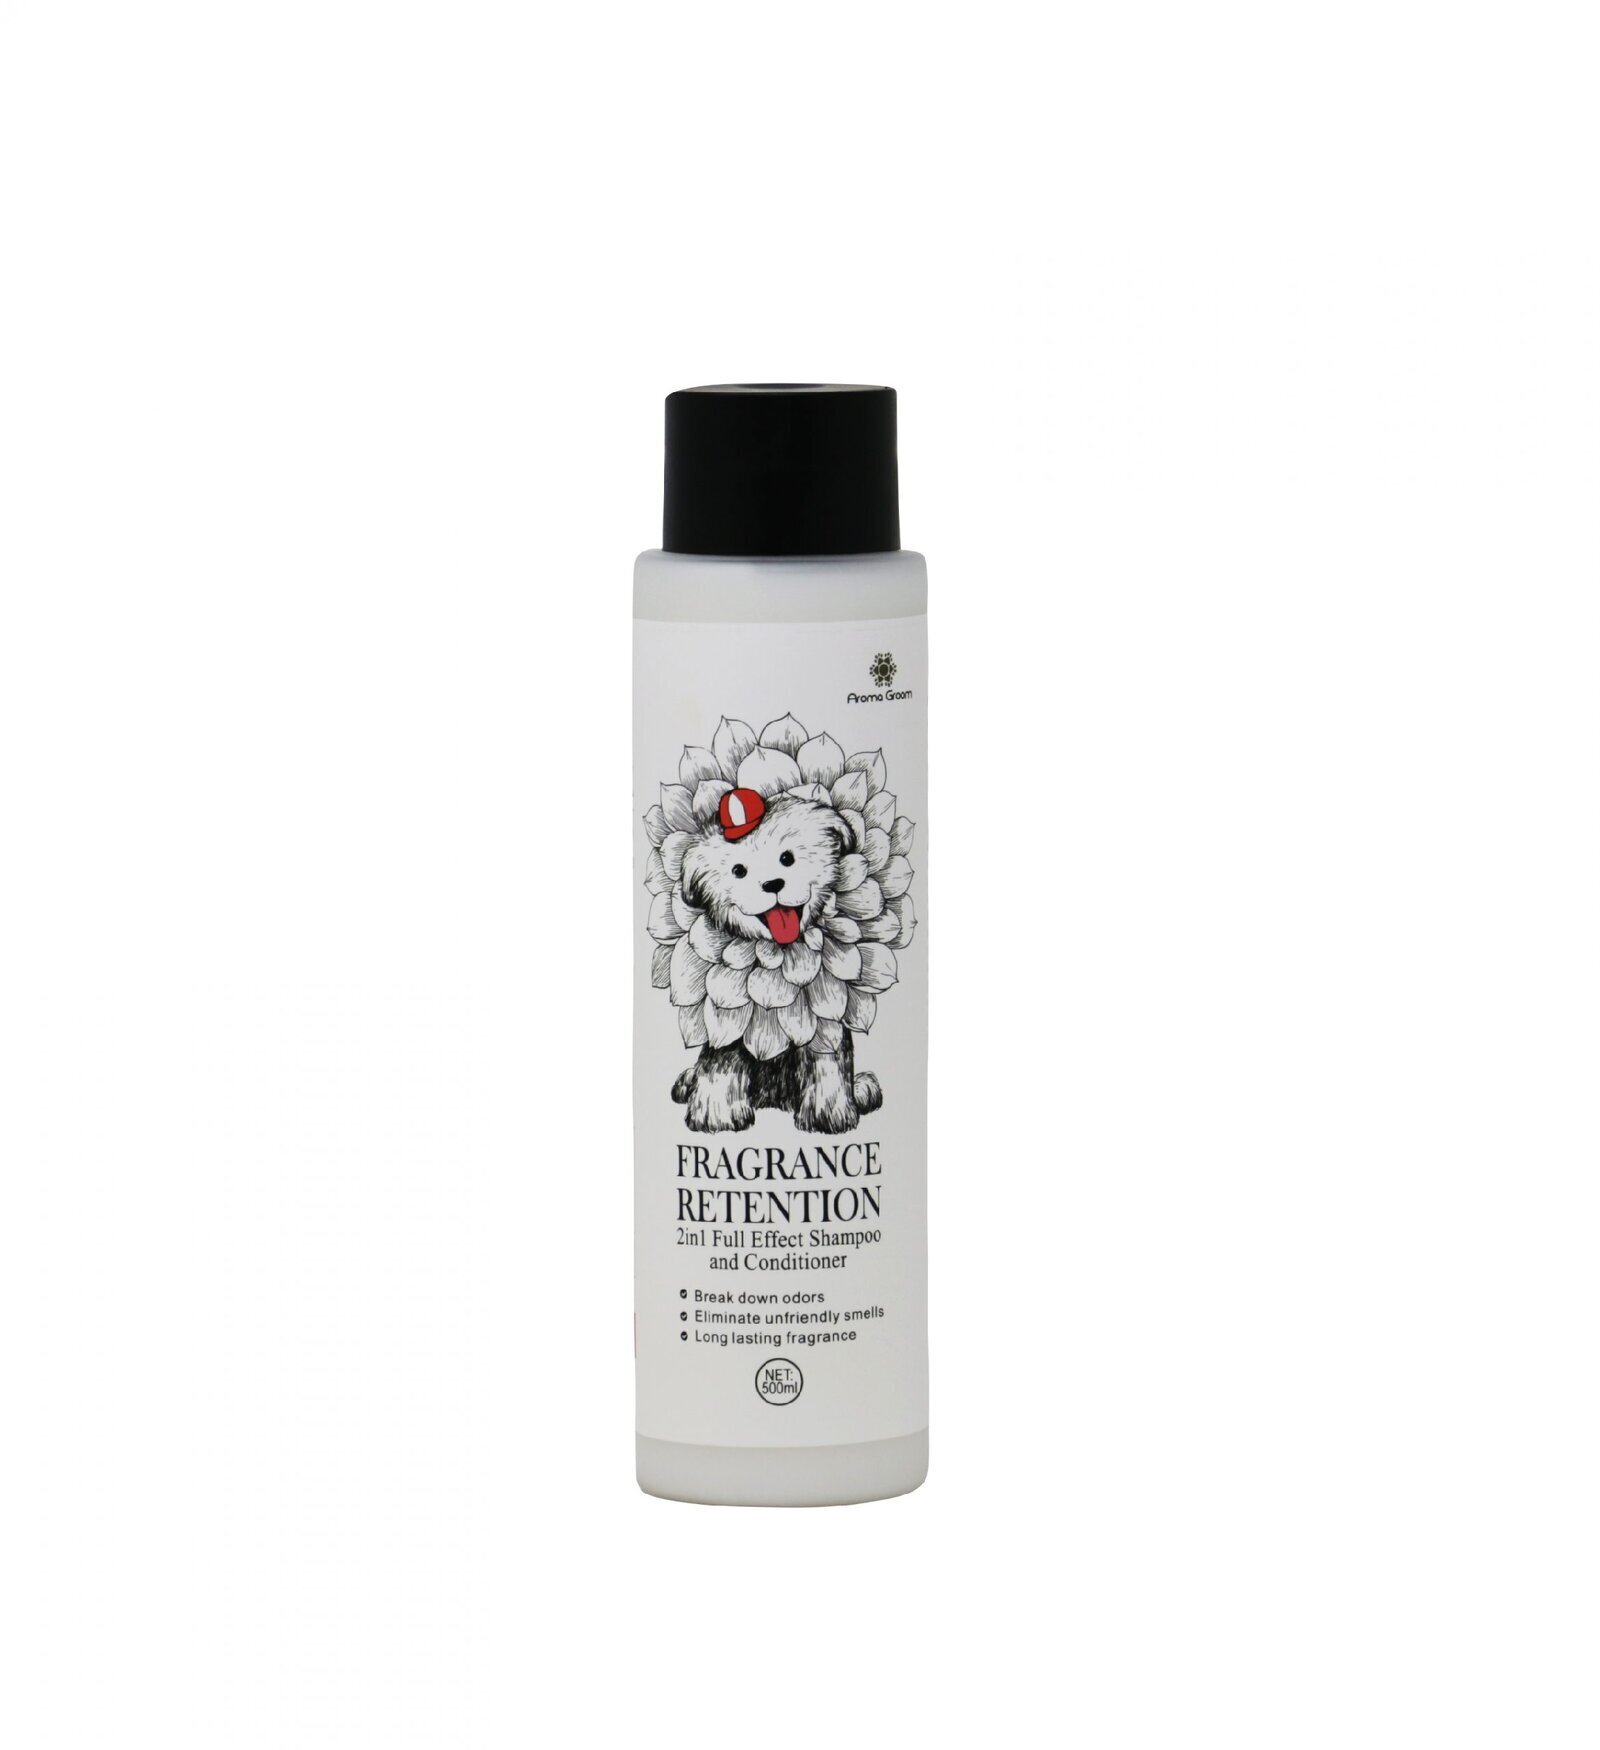 Aroma Groom 2 in 1 Shampoo and Conditioner 500ml